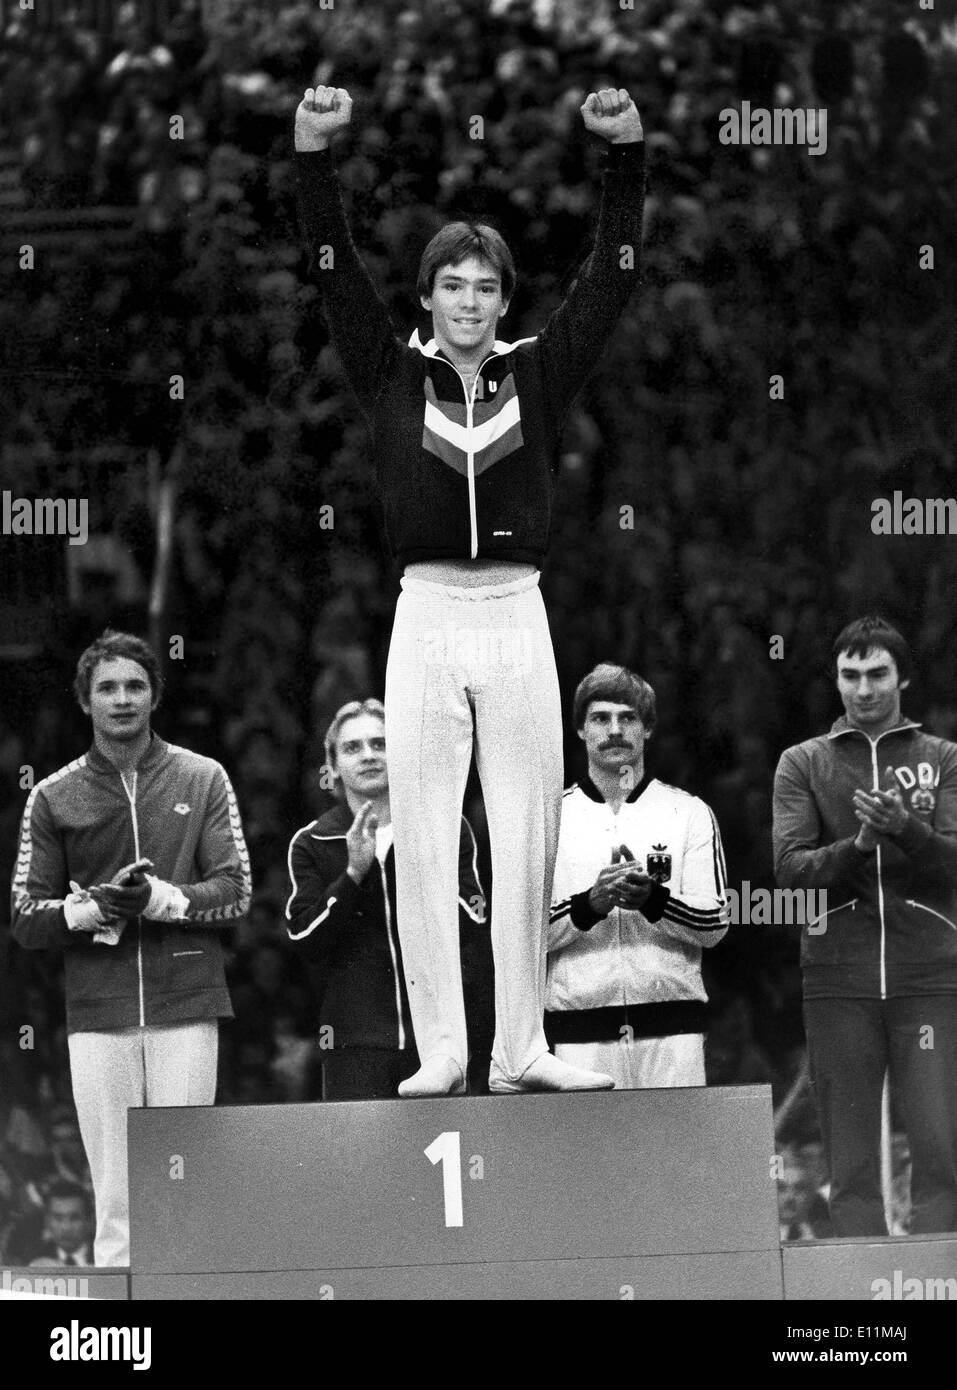 Oct 30, 1978; Strasbourg, France; American Gymnastic champion, KURT THOMAS, wins the medal for the floor displays.. - Stock Image